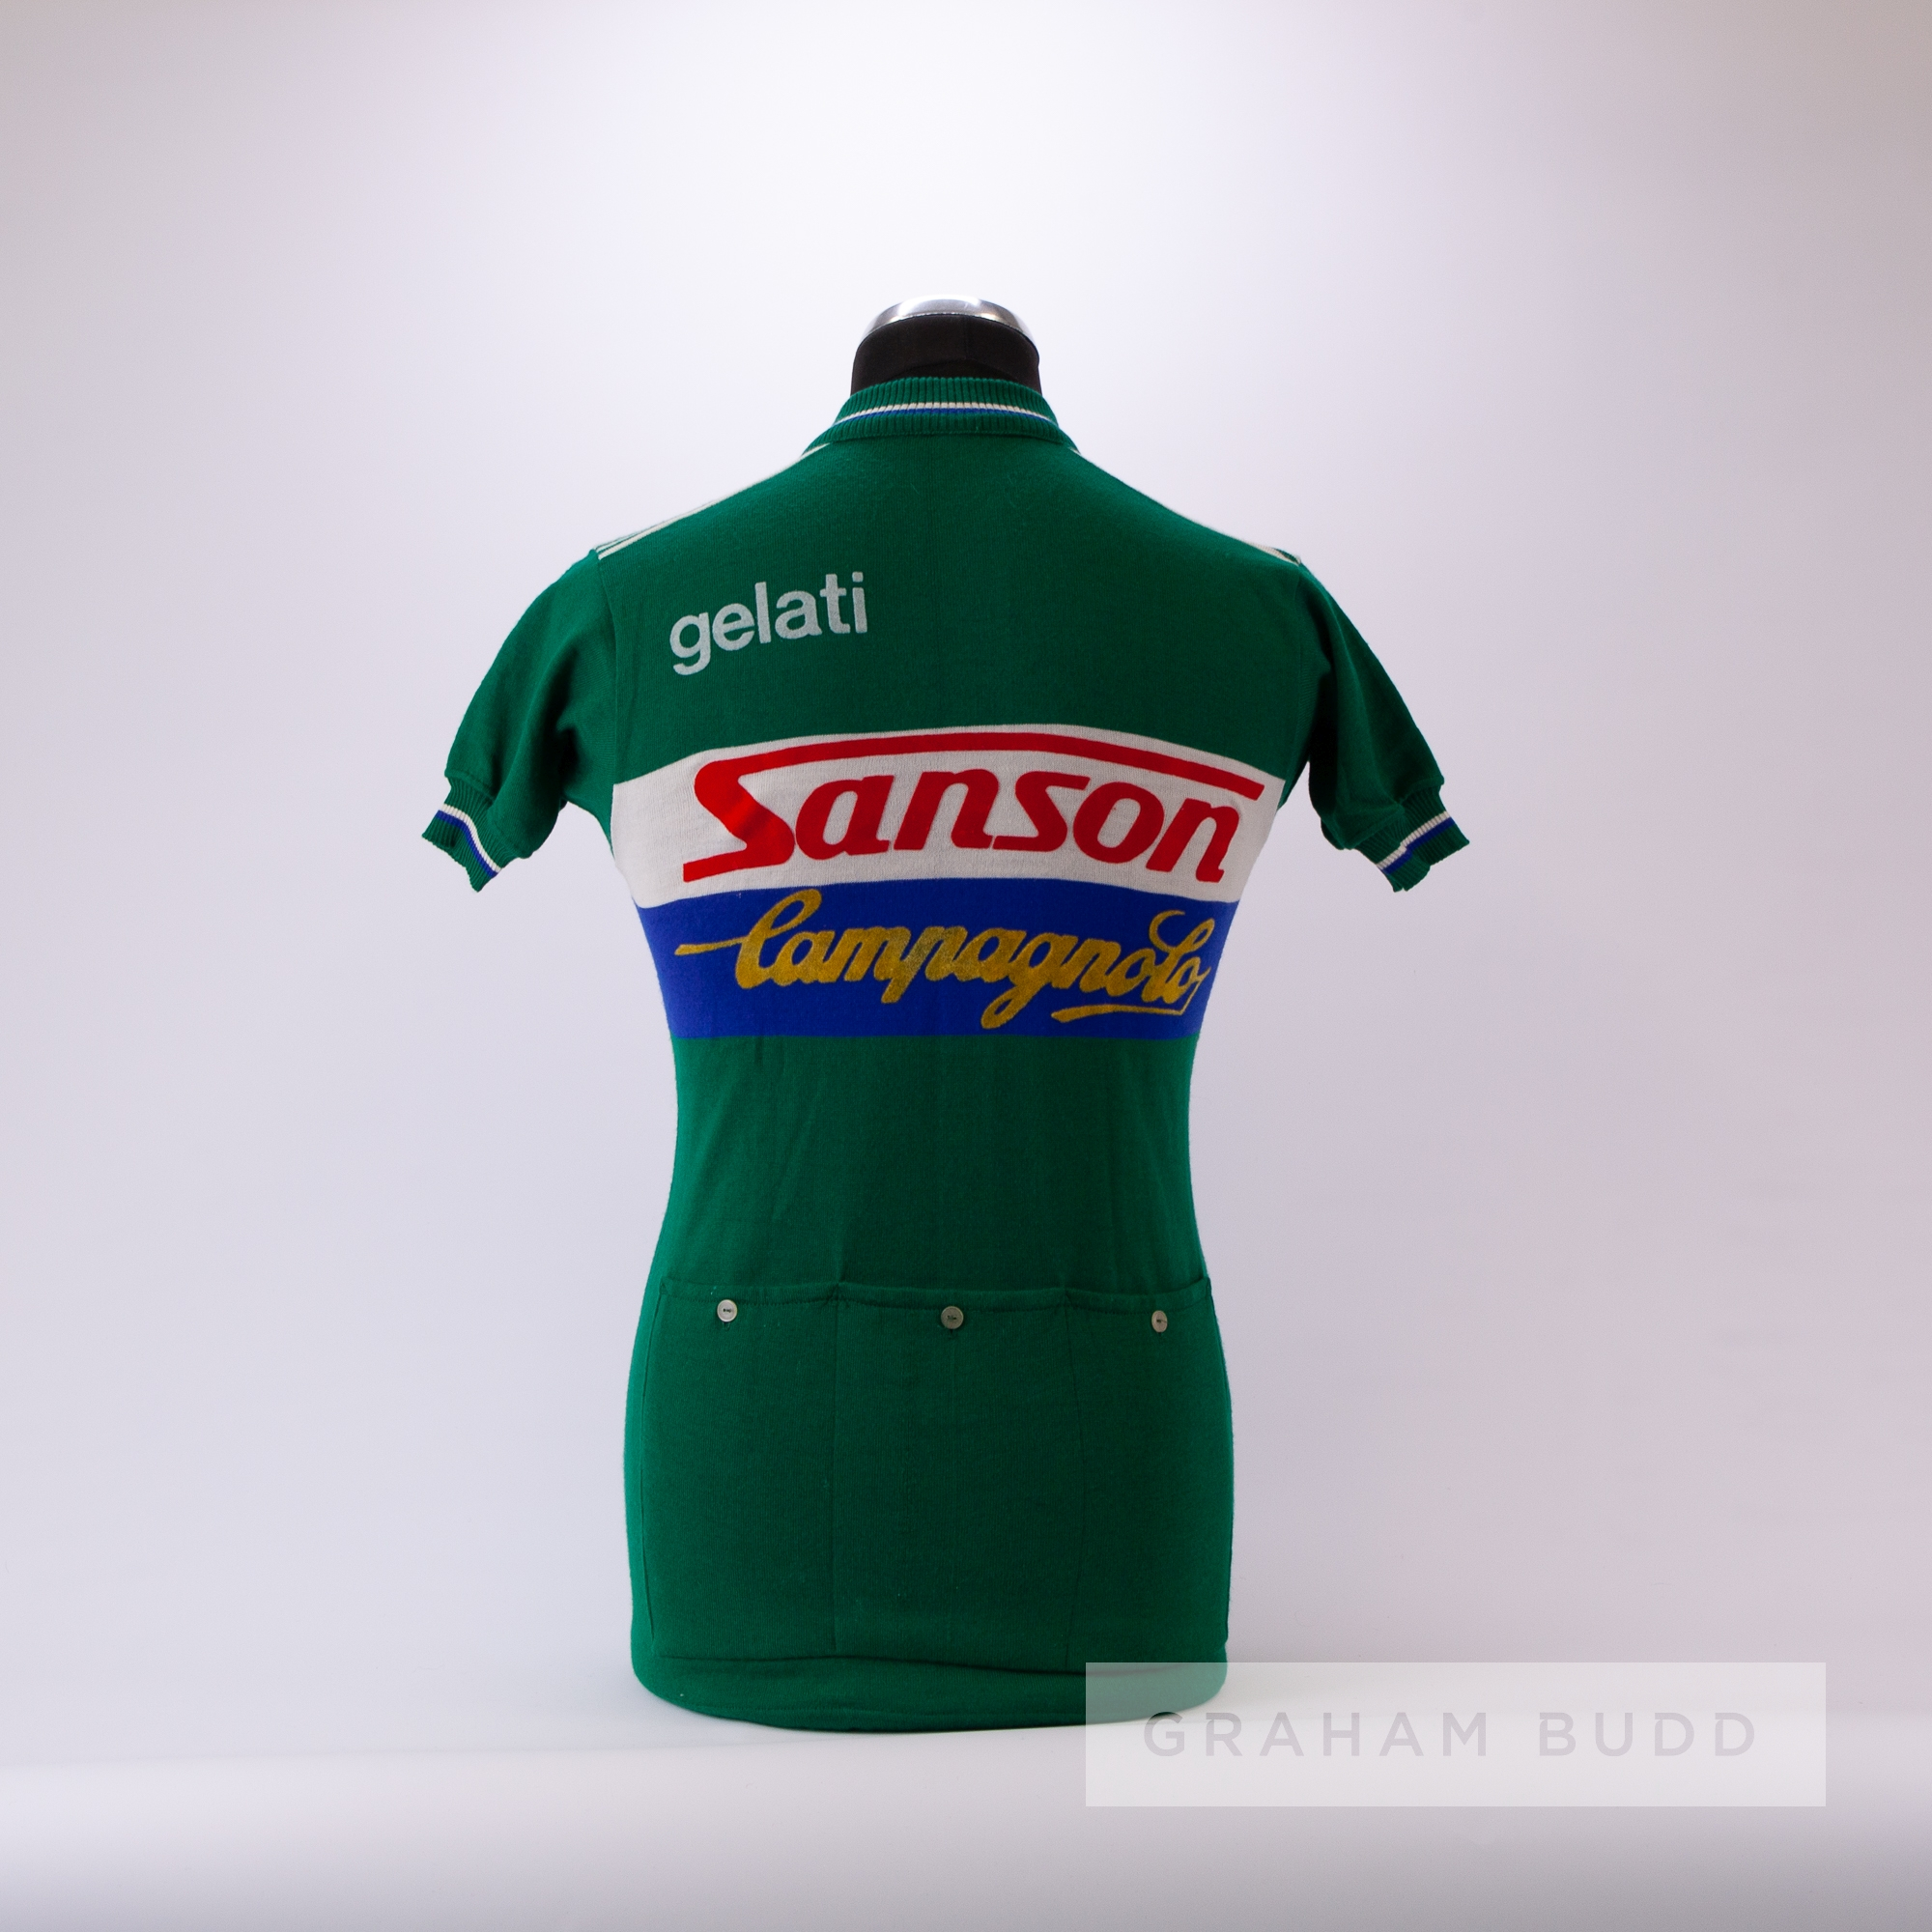 1970s green, white and blue vintage Sanson Campagnolo Cycling team race jersey, scarce, wool and - Image 4 of 4